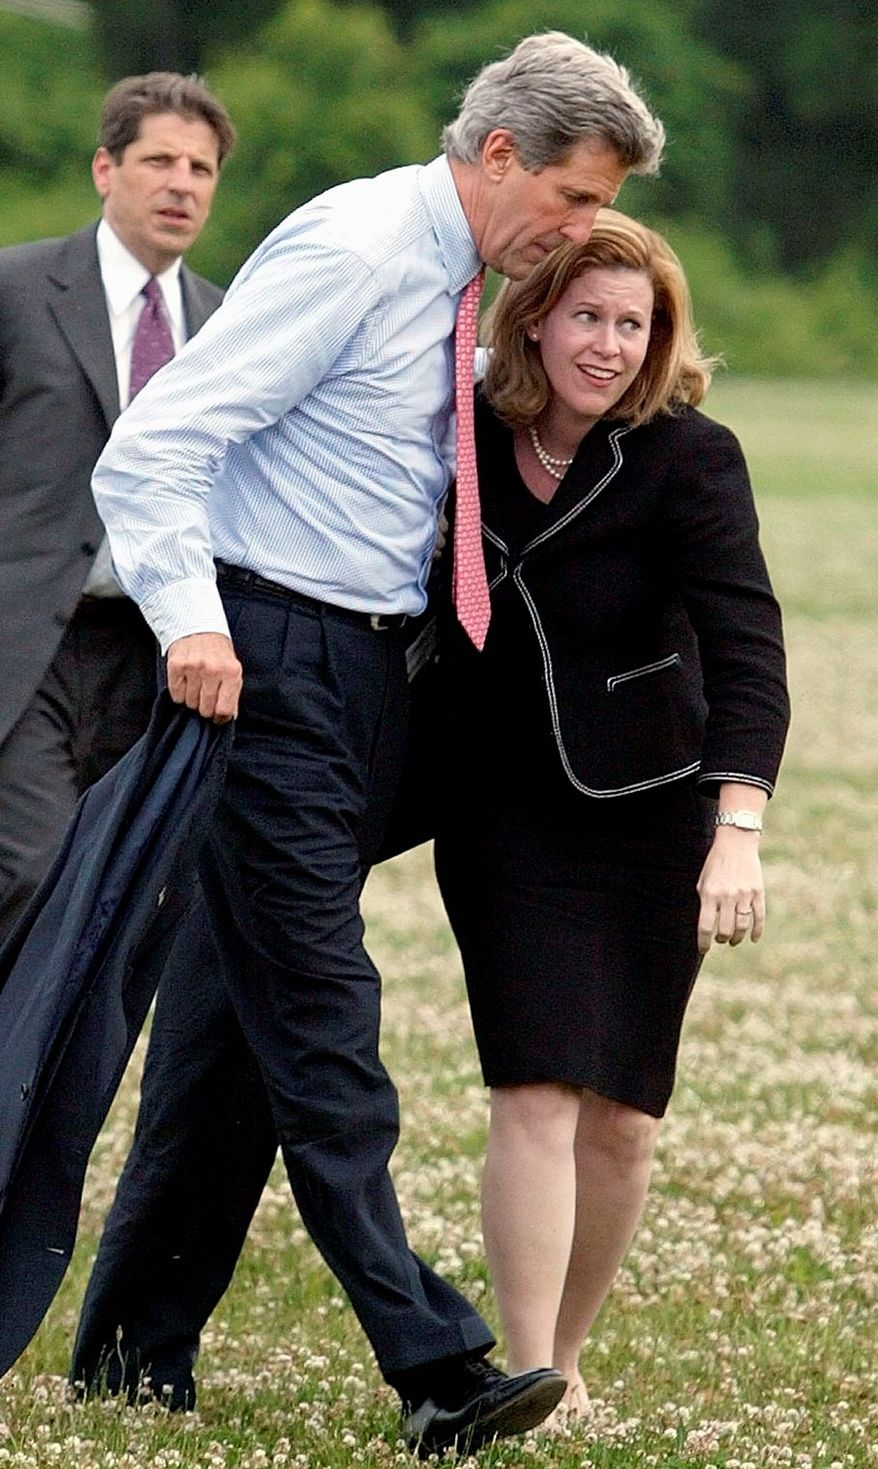 Sen. John Kerry, the Democratic presidential candidate, walks with Stephanie Cutter, a communications aide on his campaign, after exiting a helicopter in a landing zone in Red Bank, N.J., in 2004. (Associated Press)